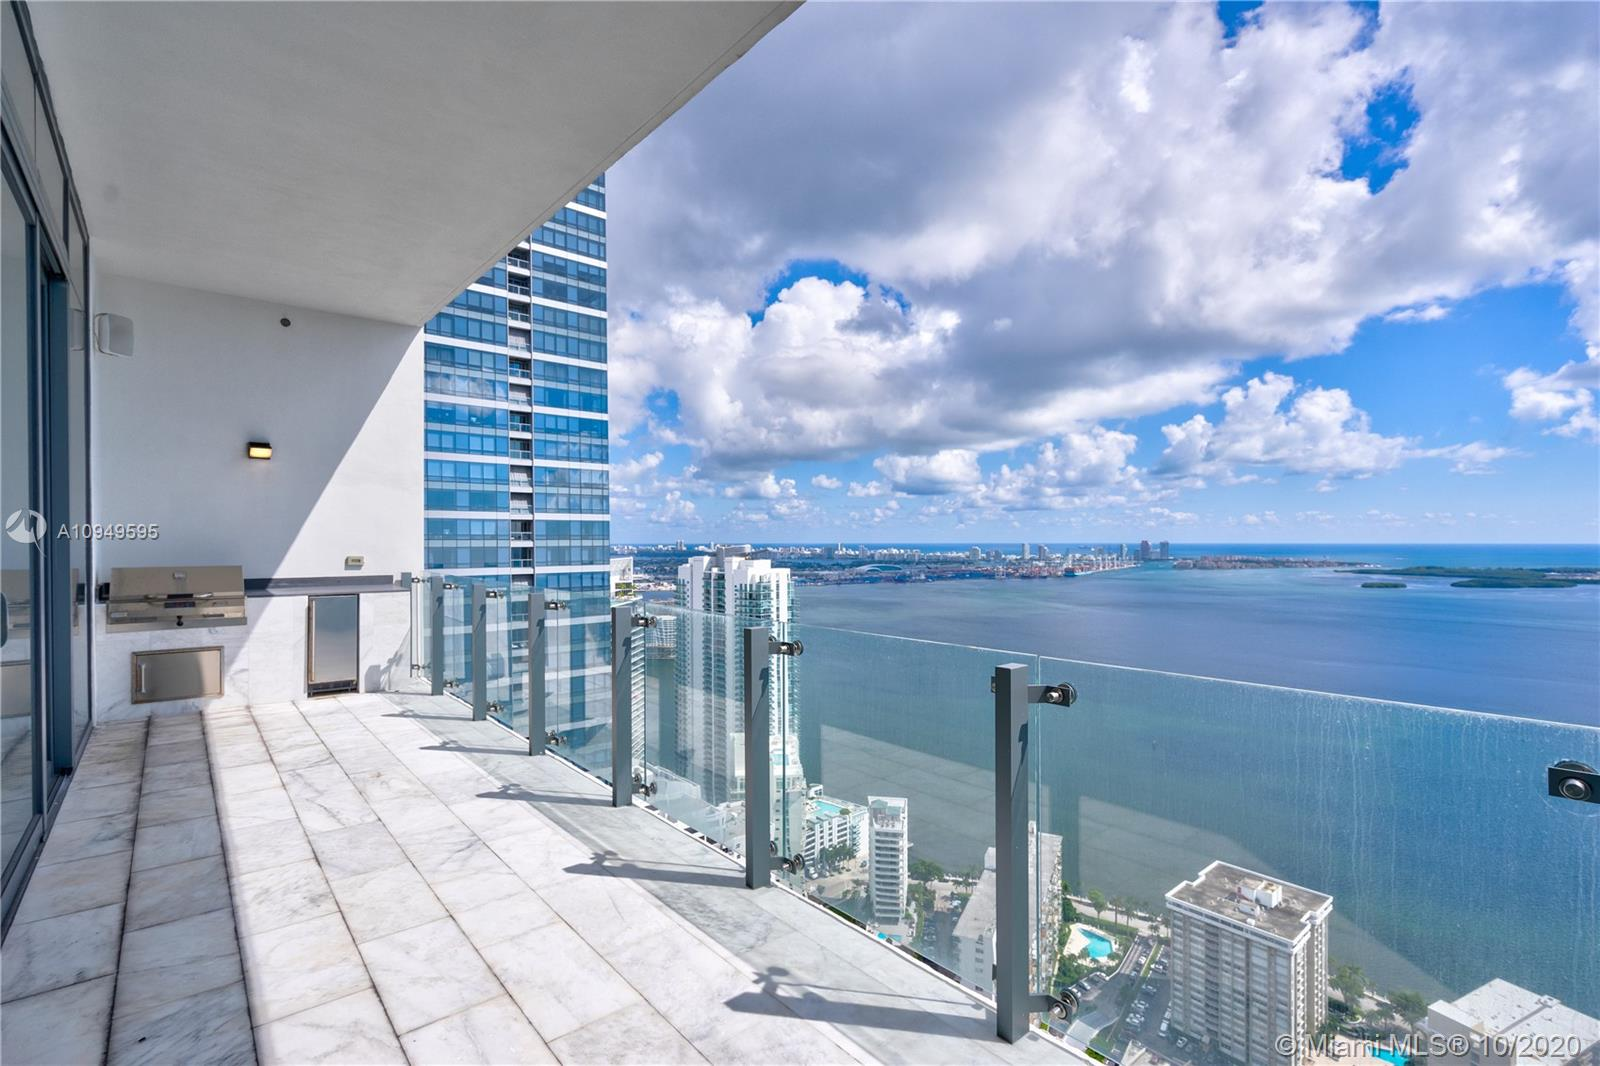 Incredible building from famous Carlos Ott!! Amazing Lower Penthouse unit never lived with endless and unobstructed views of Biscayne Bay and the ocean.  This Unit has 3 Bedrooms + den, 3 Bathrooms and a Half Bath; 12 ft high ceilings with floor to ceiling glass windows. Top of the line appliances (Wolf ), Sub-Zero Refrigerator,  wine cooler and built-in coffee & espresso machine.  Unit comes with marble floor and wood laminate in the rooms. Summer Kitchen with  Barbecue Grill in a Huge Terrace with unbelievable views. Building is considered  a five star Building with state of the art amenities including spa, fitness center, infinity edge pools, concierge service and a lot of other great features. You must see it!!